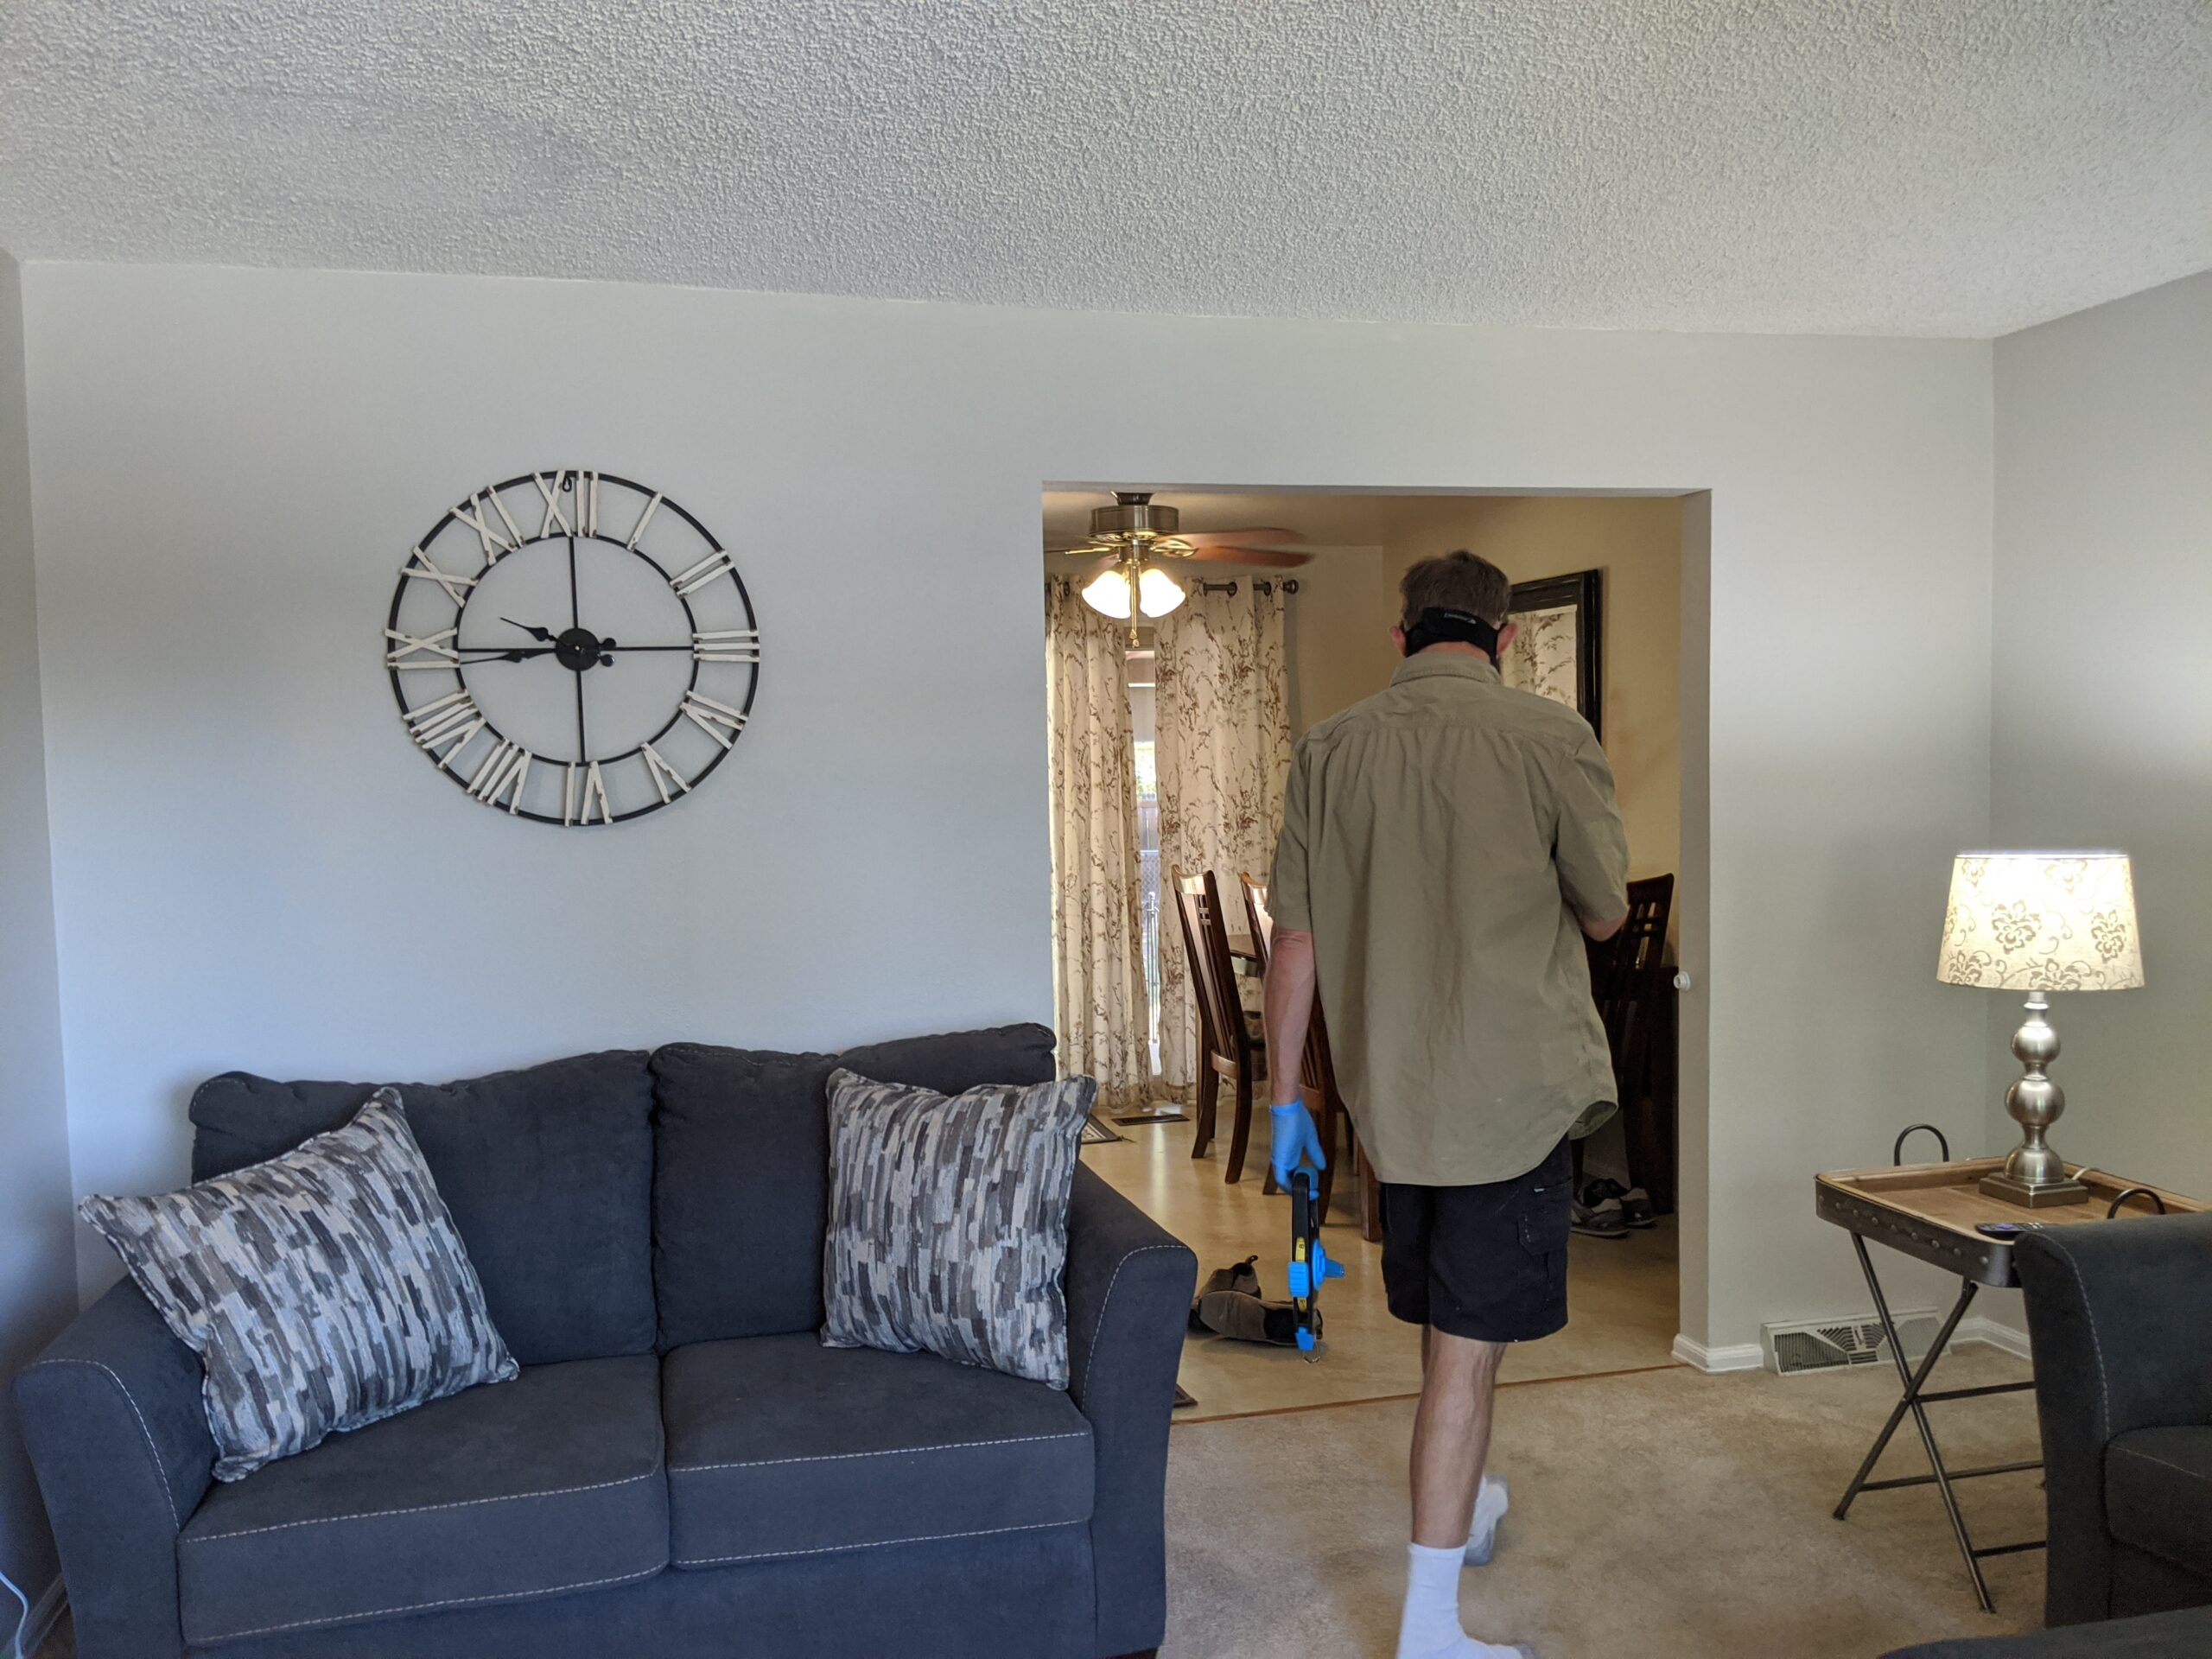 Living spaces in older homes were typically broken up into smaller rooms, but modern living favors open floor plans. This non-loading bearing wall that separates the living room and kitchen also blocks natural light flowing through the house. It's coming down!